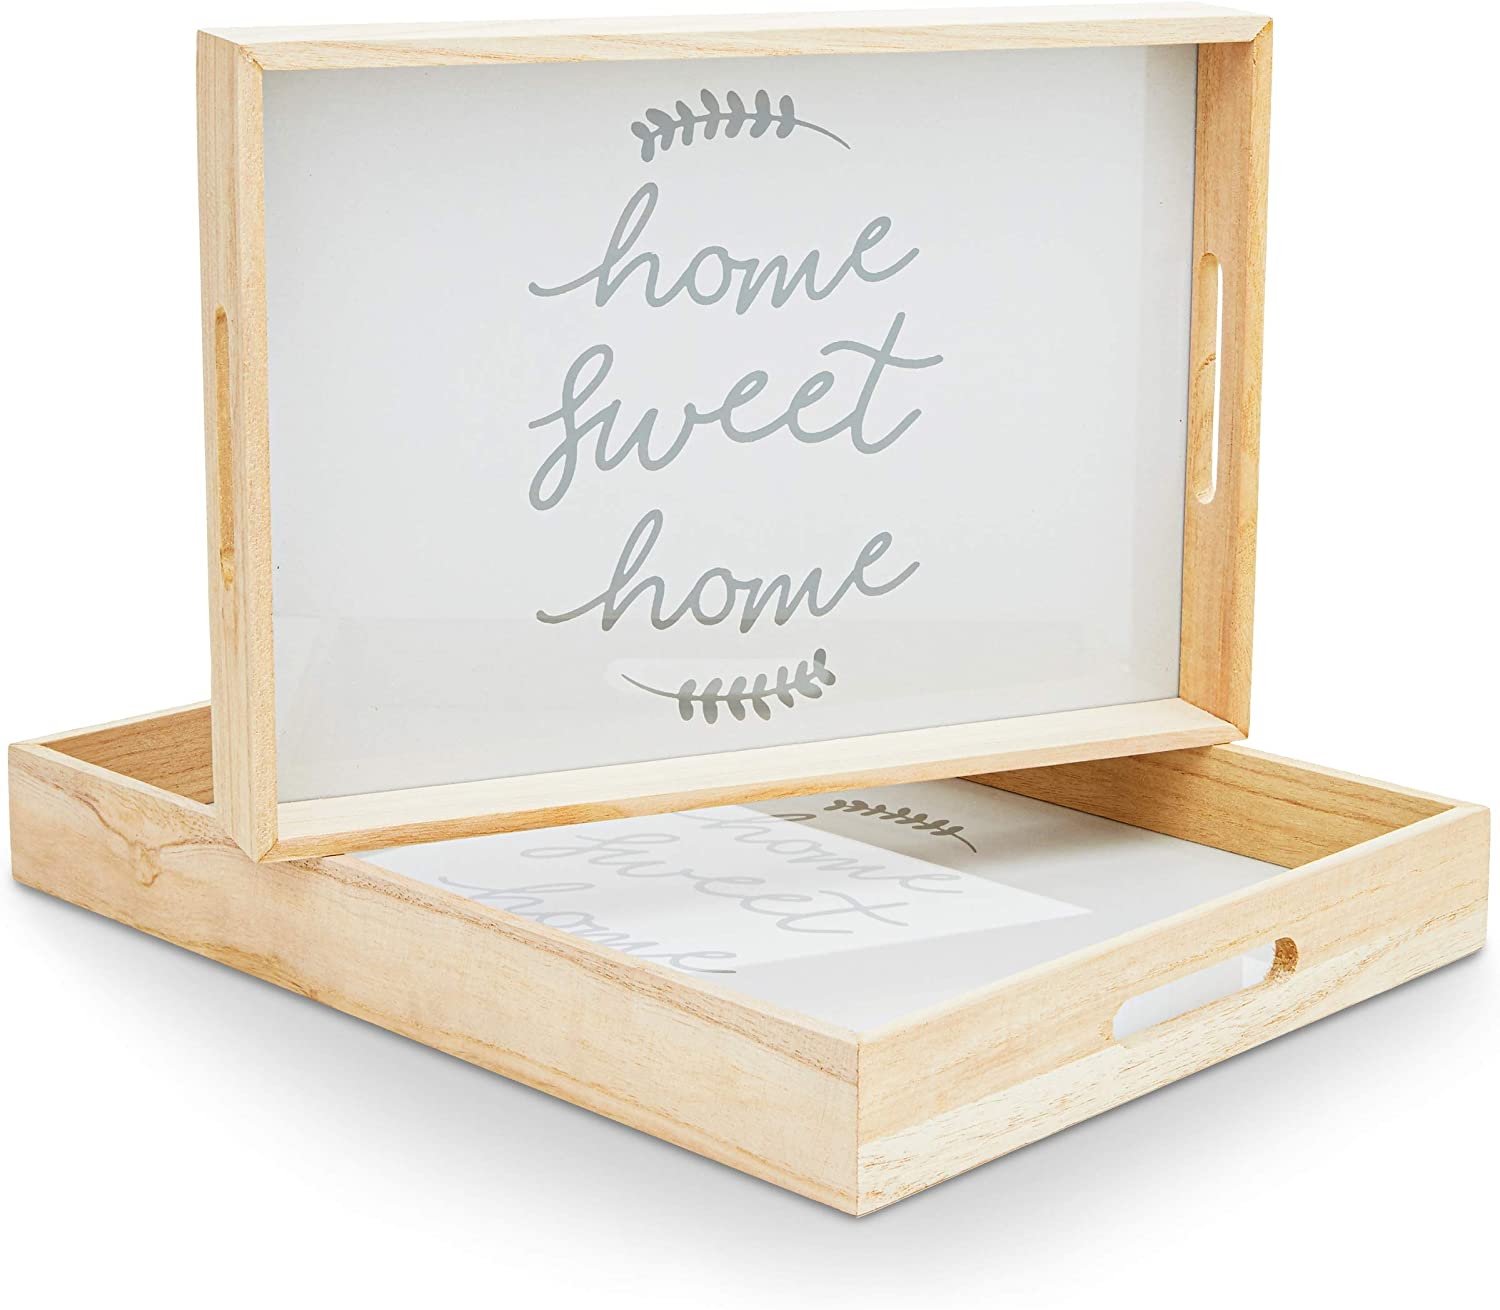 Wooden Serving Tray Set with Handles, Home Sweet Home (2 Pack)